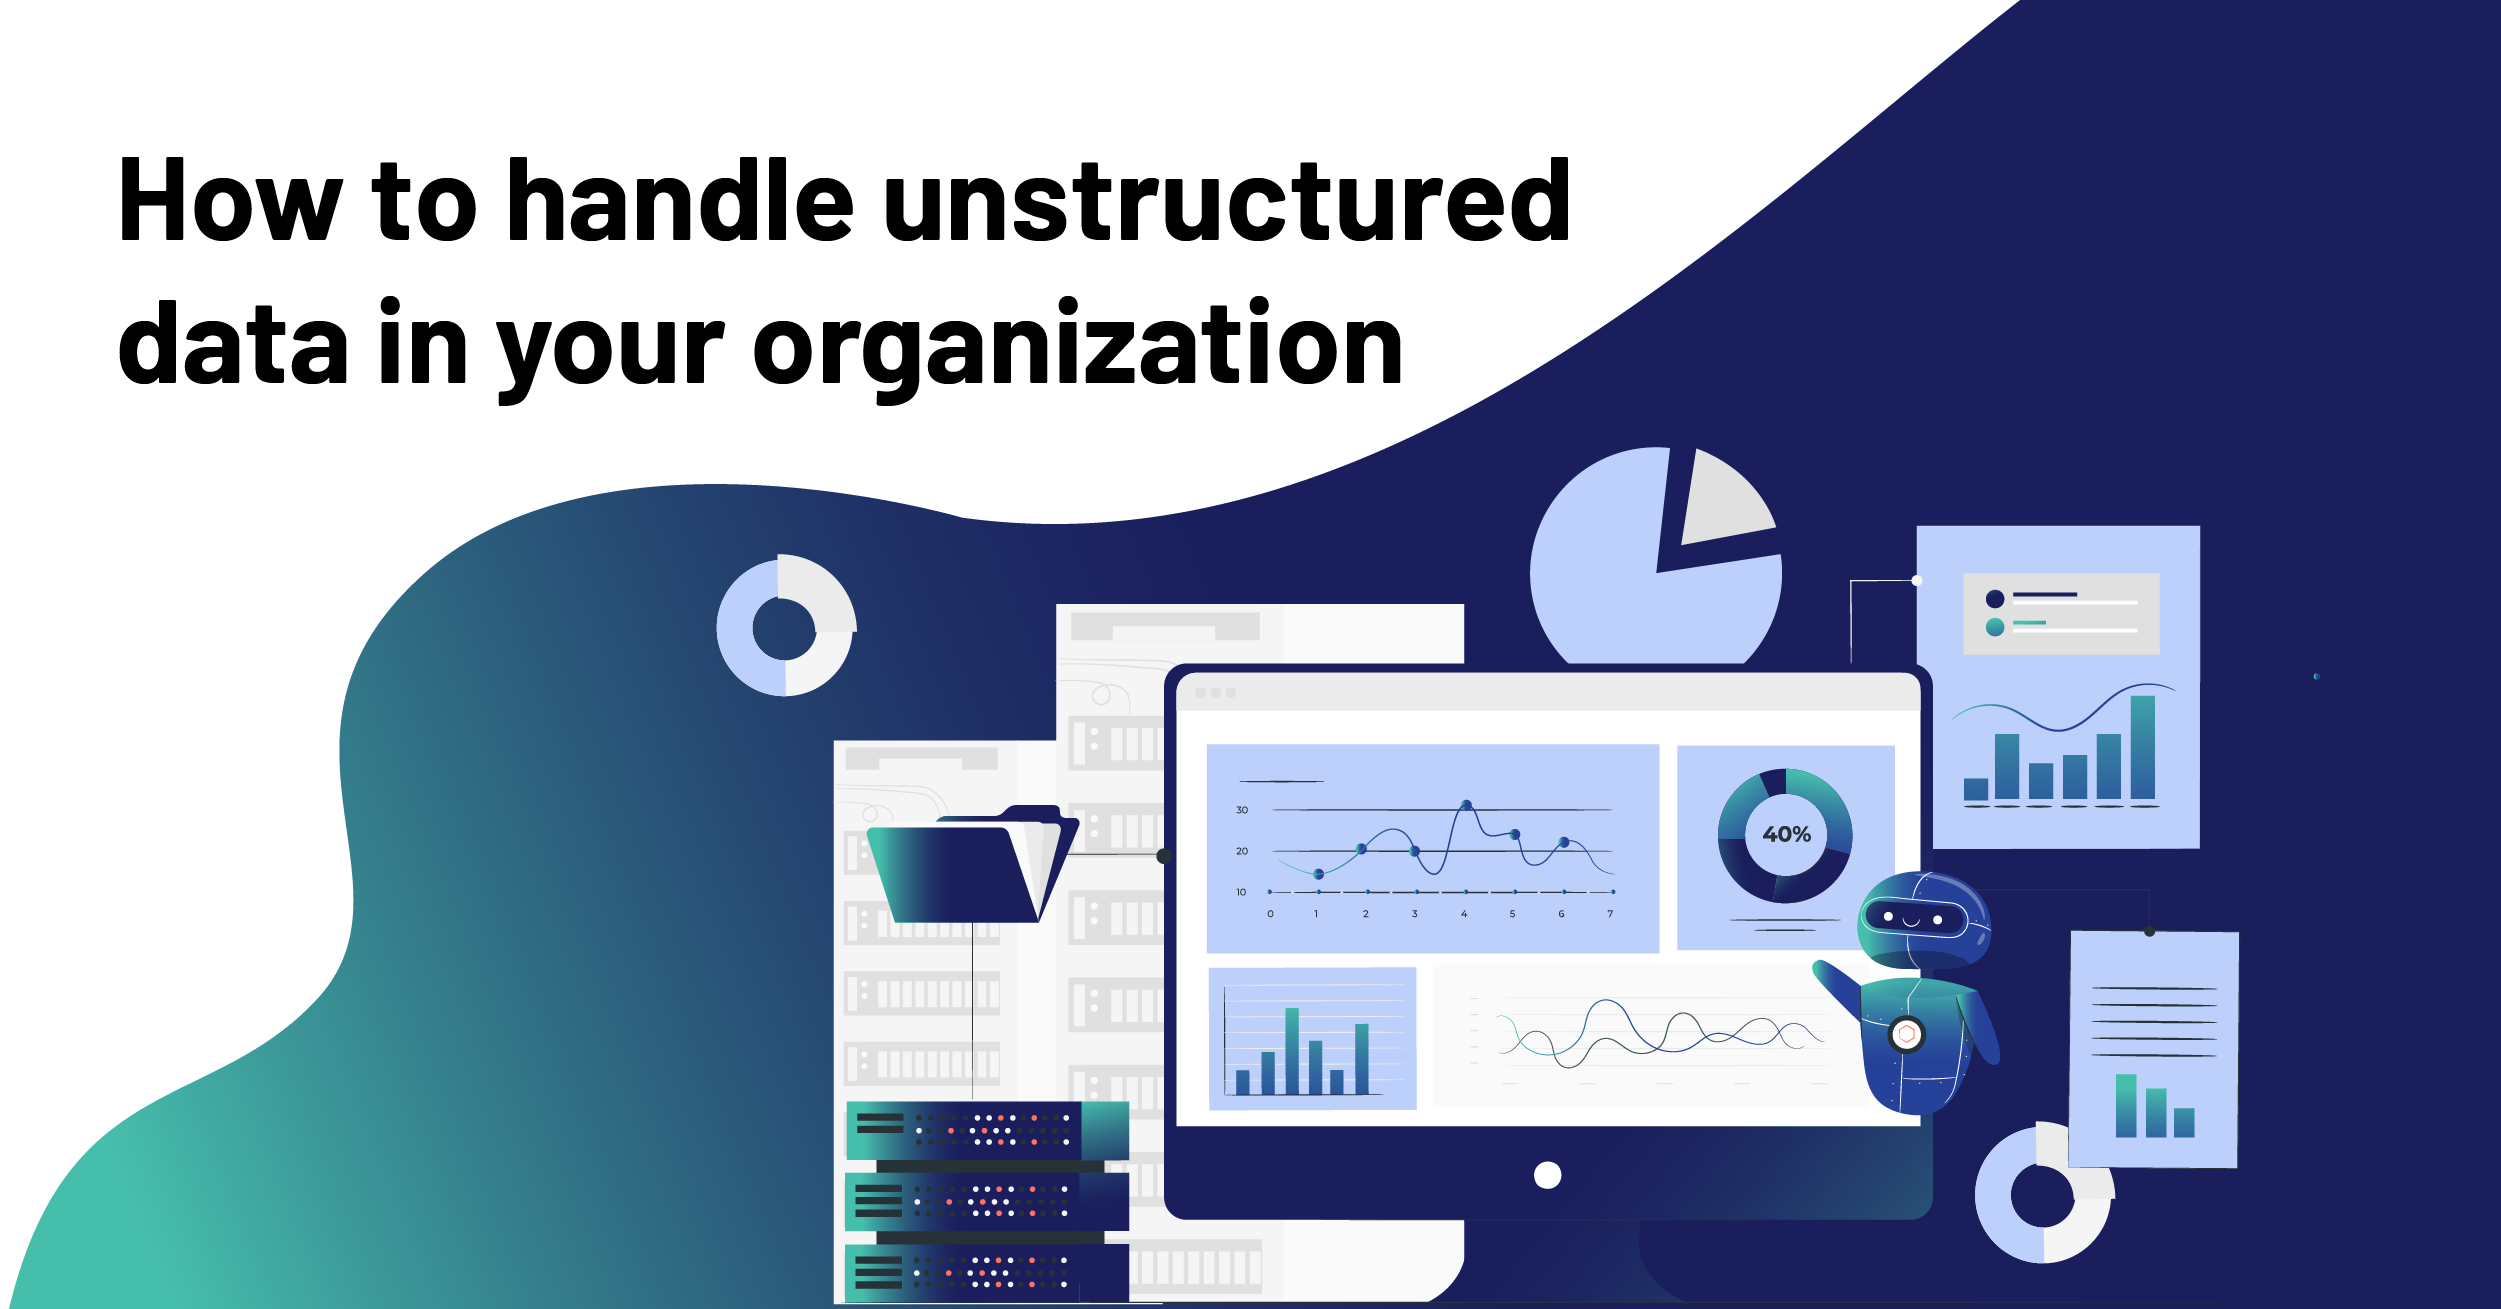 How to handle unstructured data in your organization